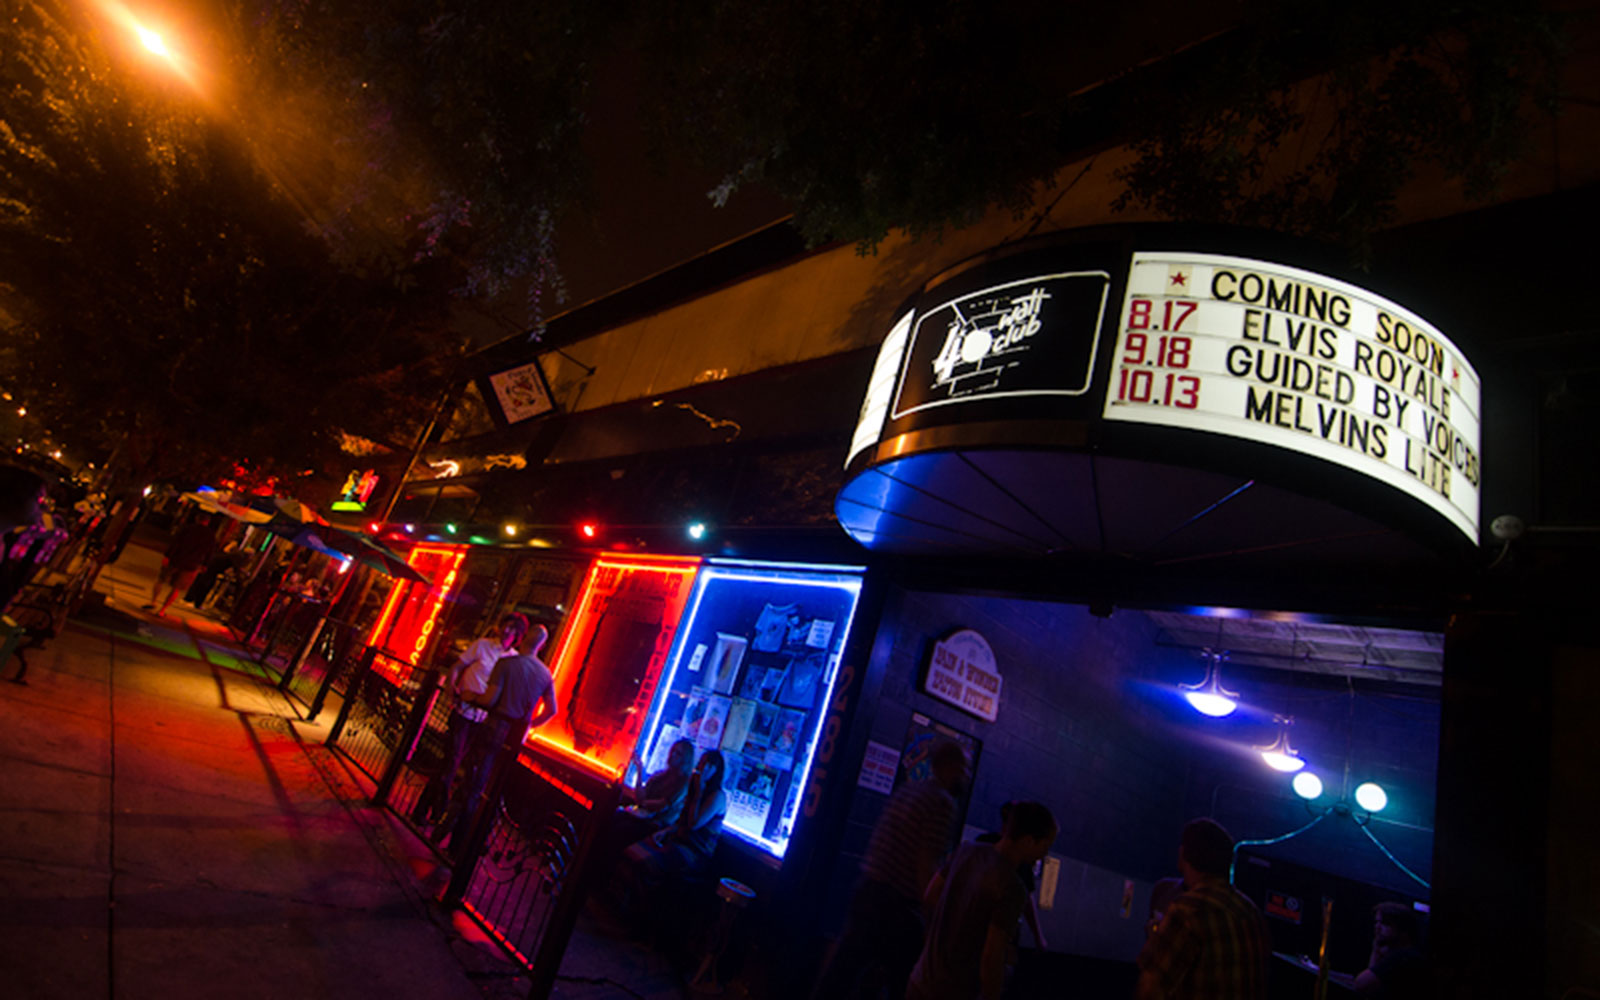 America's Coolest Music Venues: 40 Watt Club